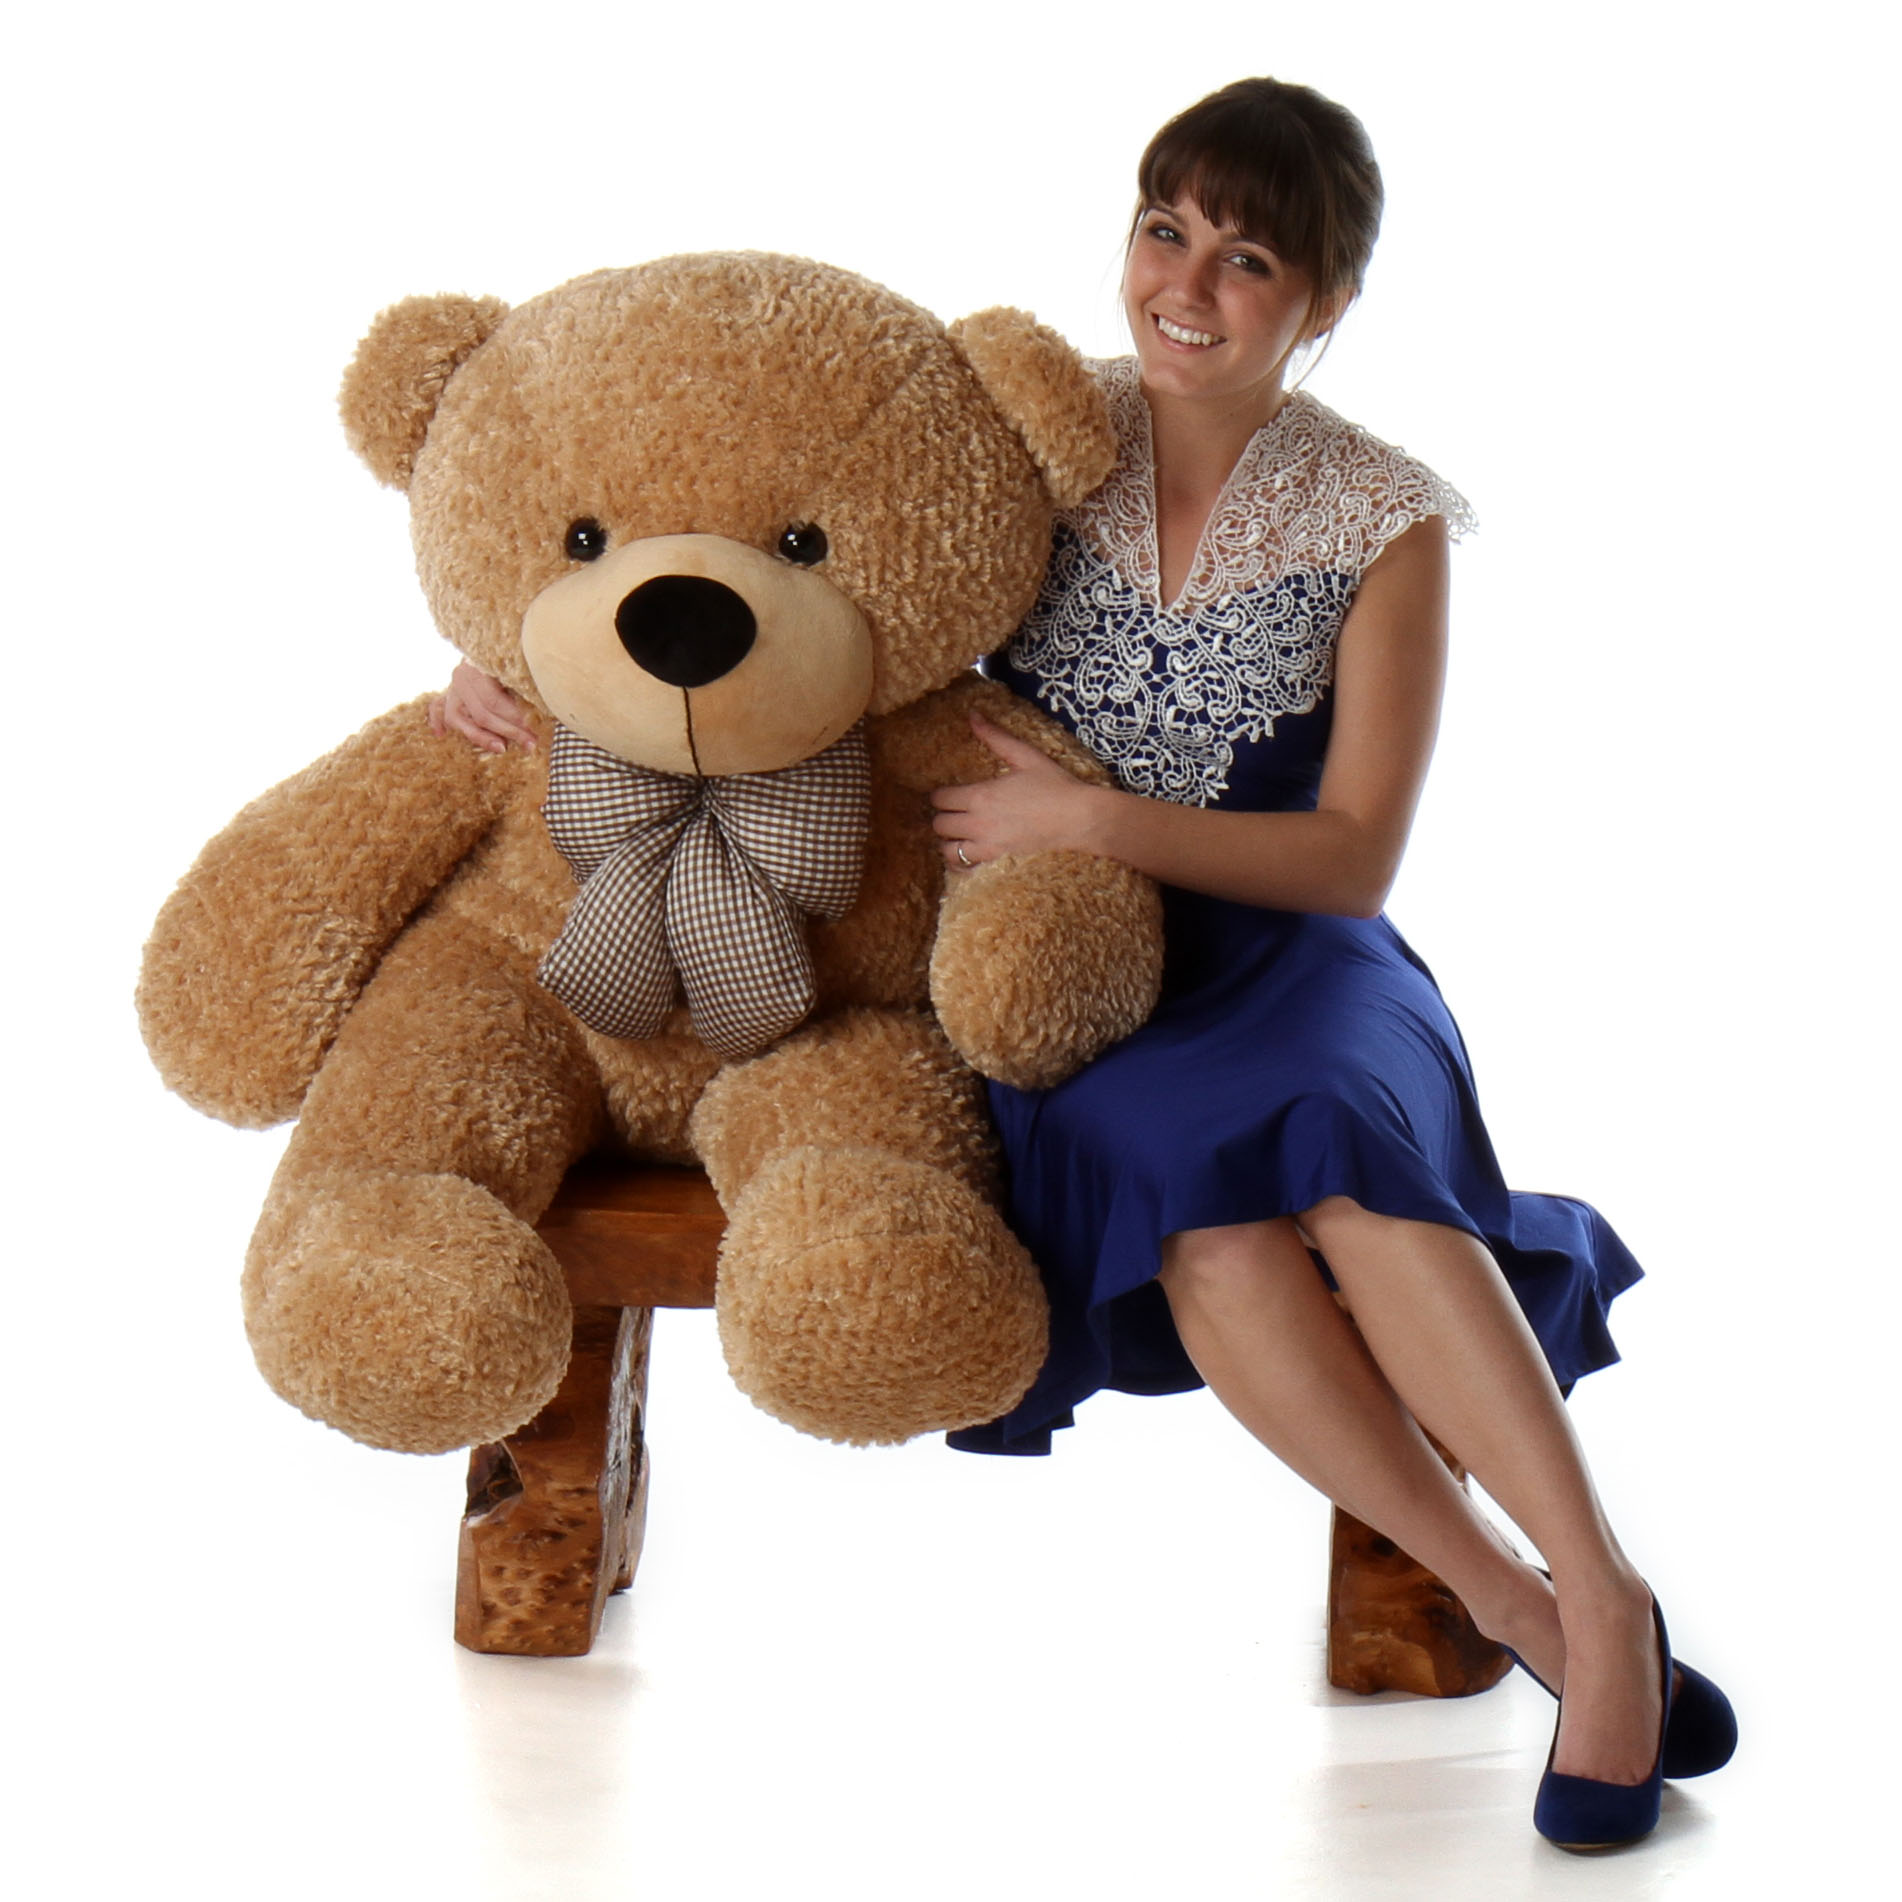 4ft-life-size-teddy-bear-shaggy-cuddles-soft-amber-brown-fur.jpg